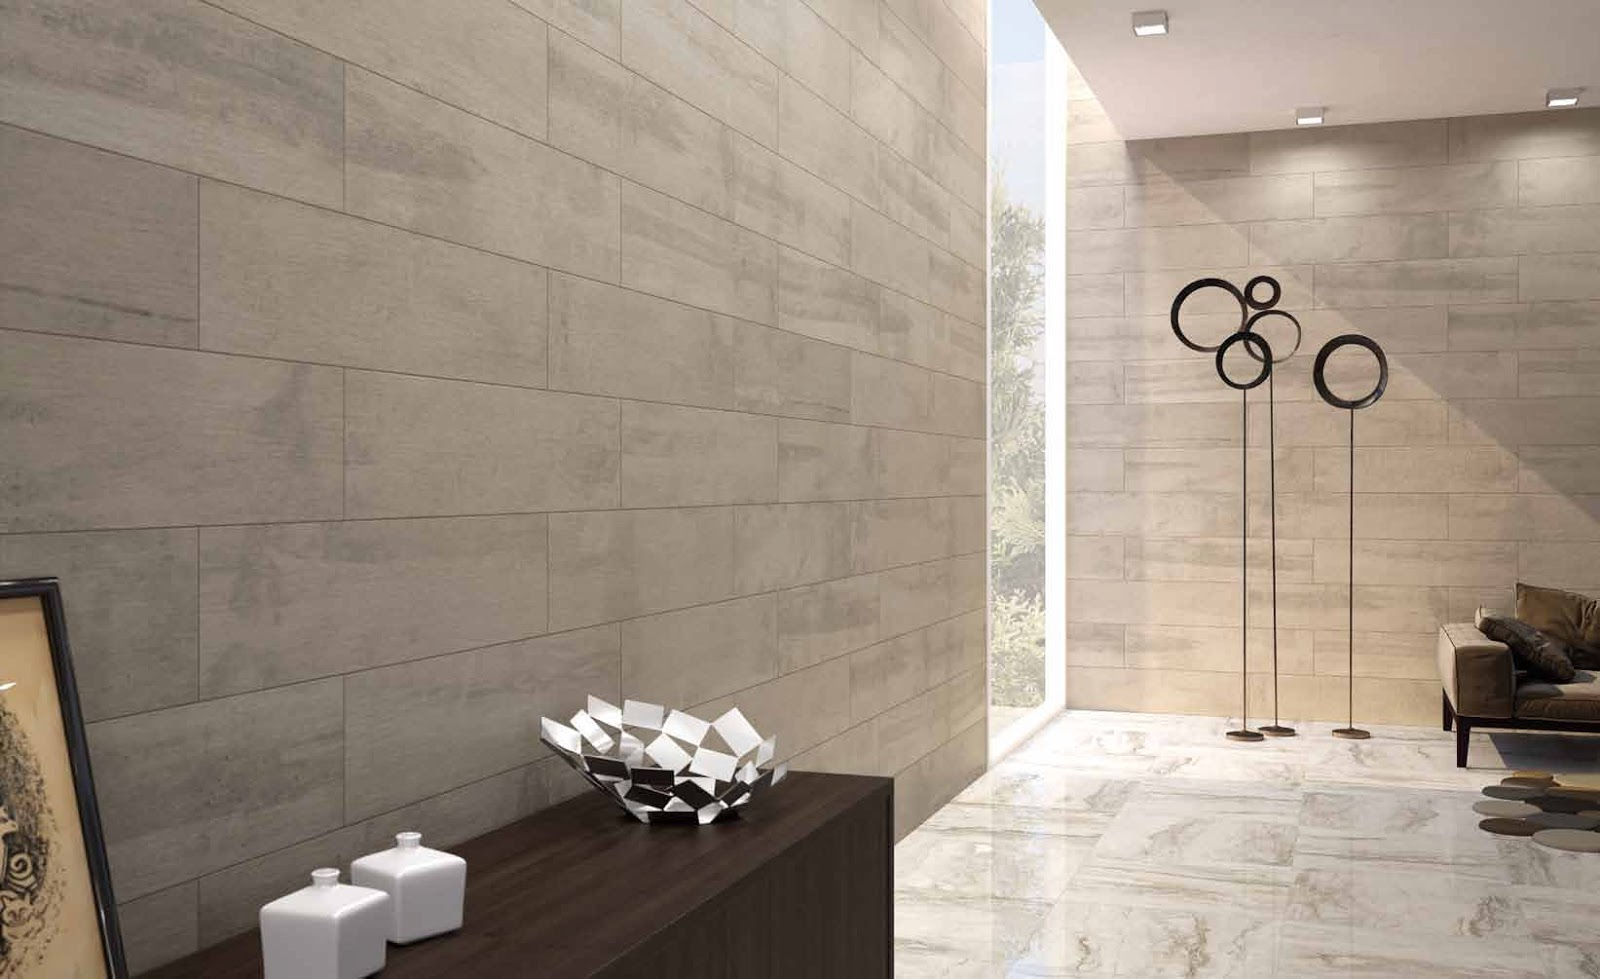 Avente Tile Talk Spanish Design Innovation Inspires